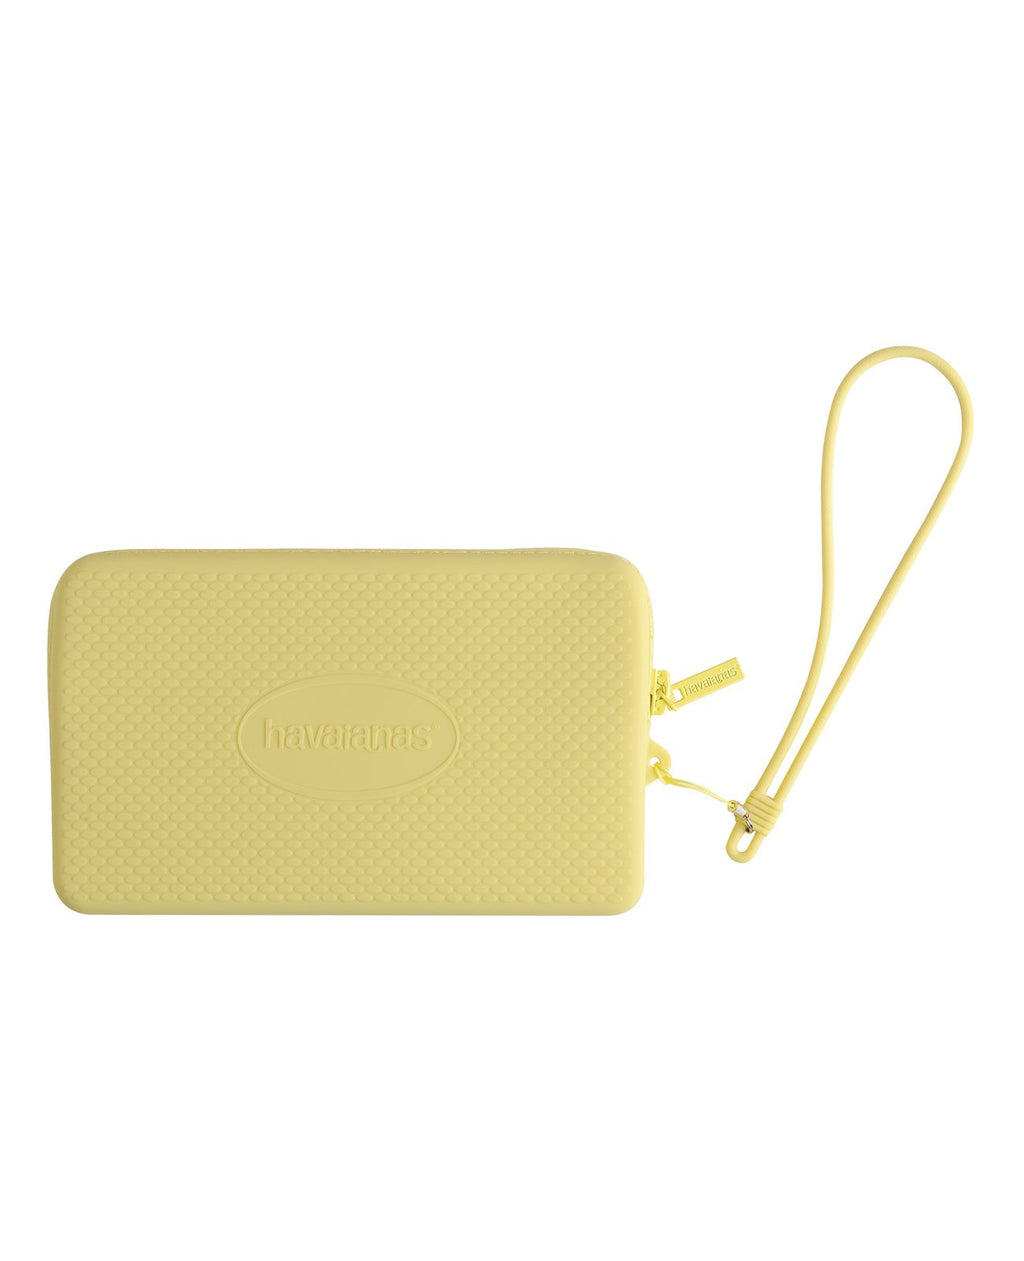 HAVAIANAS MINI BAG PLUS - LIGHT YELLOW